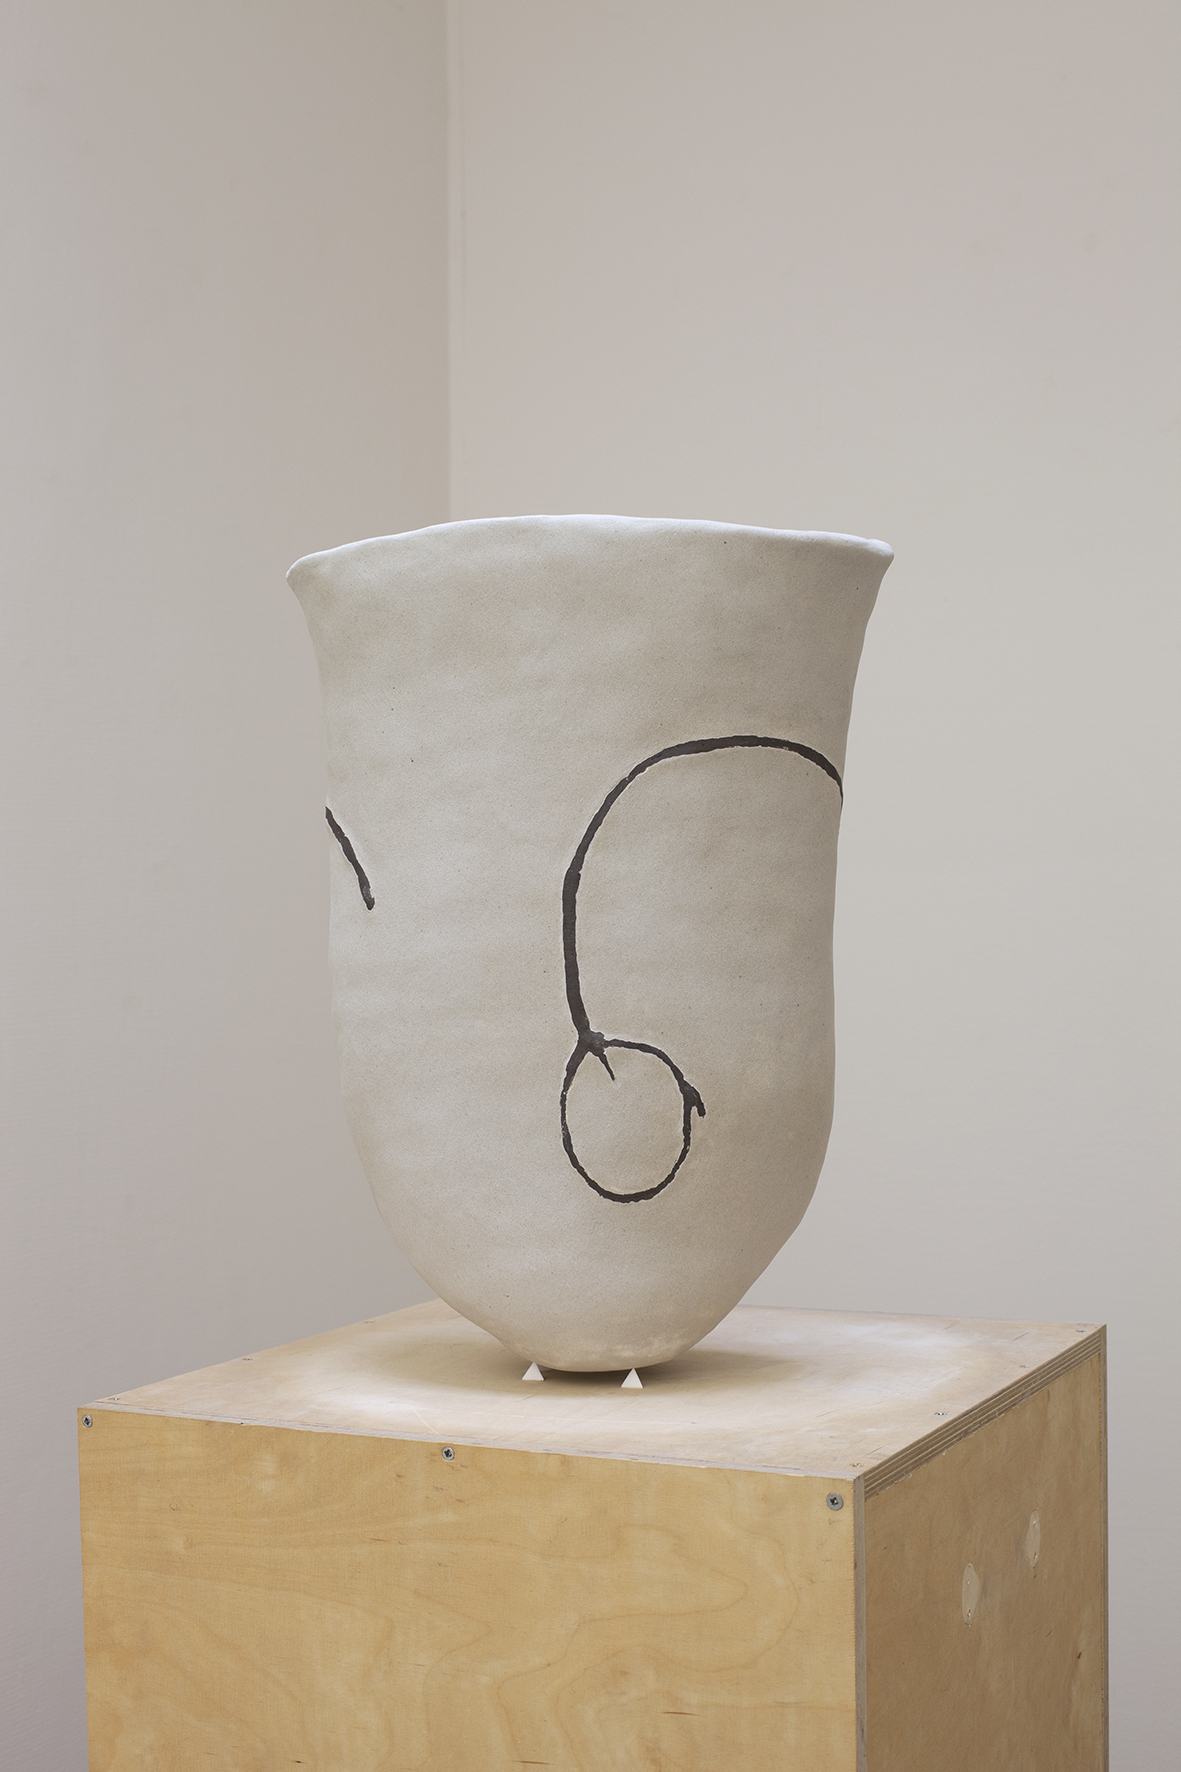 Nicoline Timmer, Polyphonic vases, no. 3